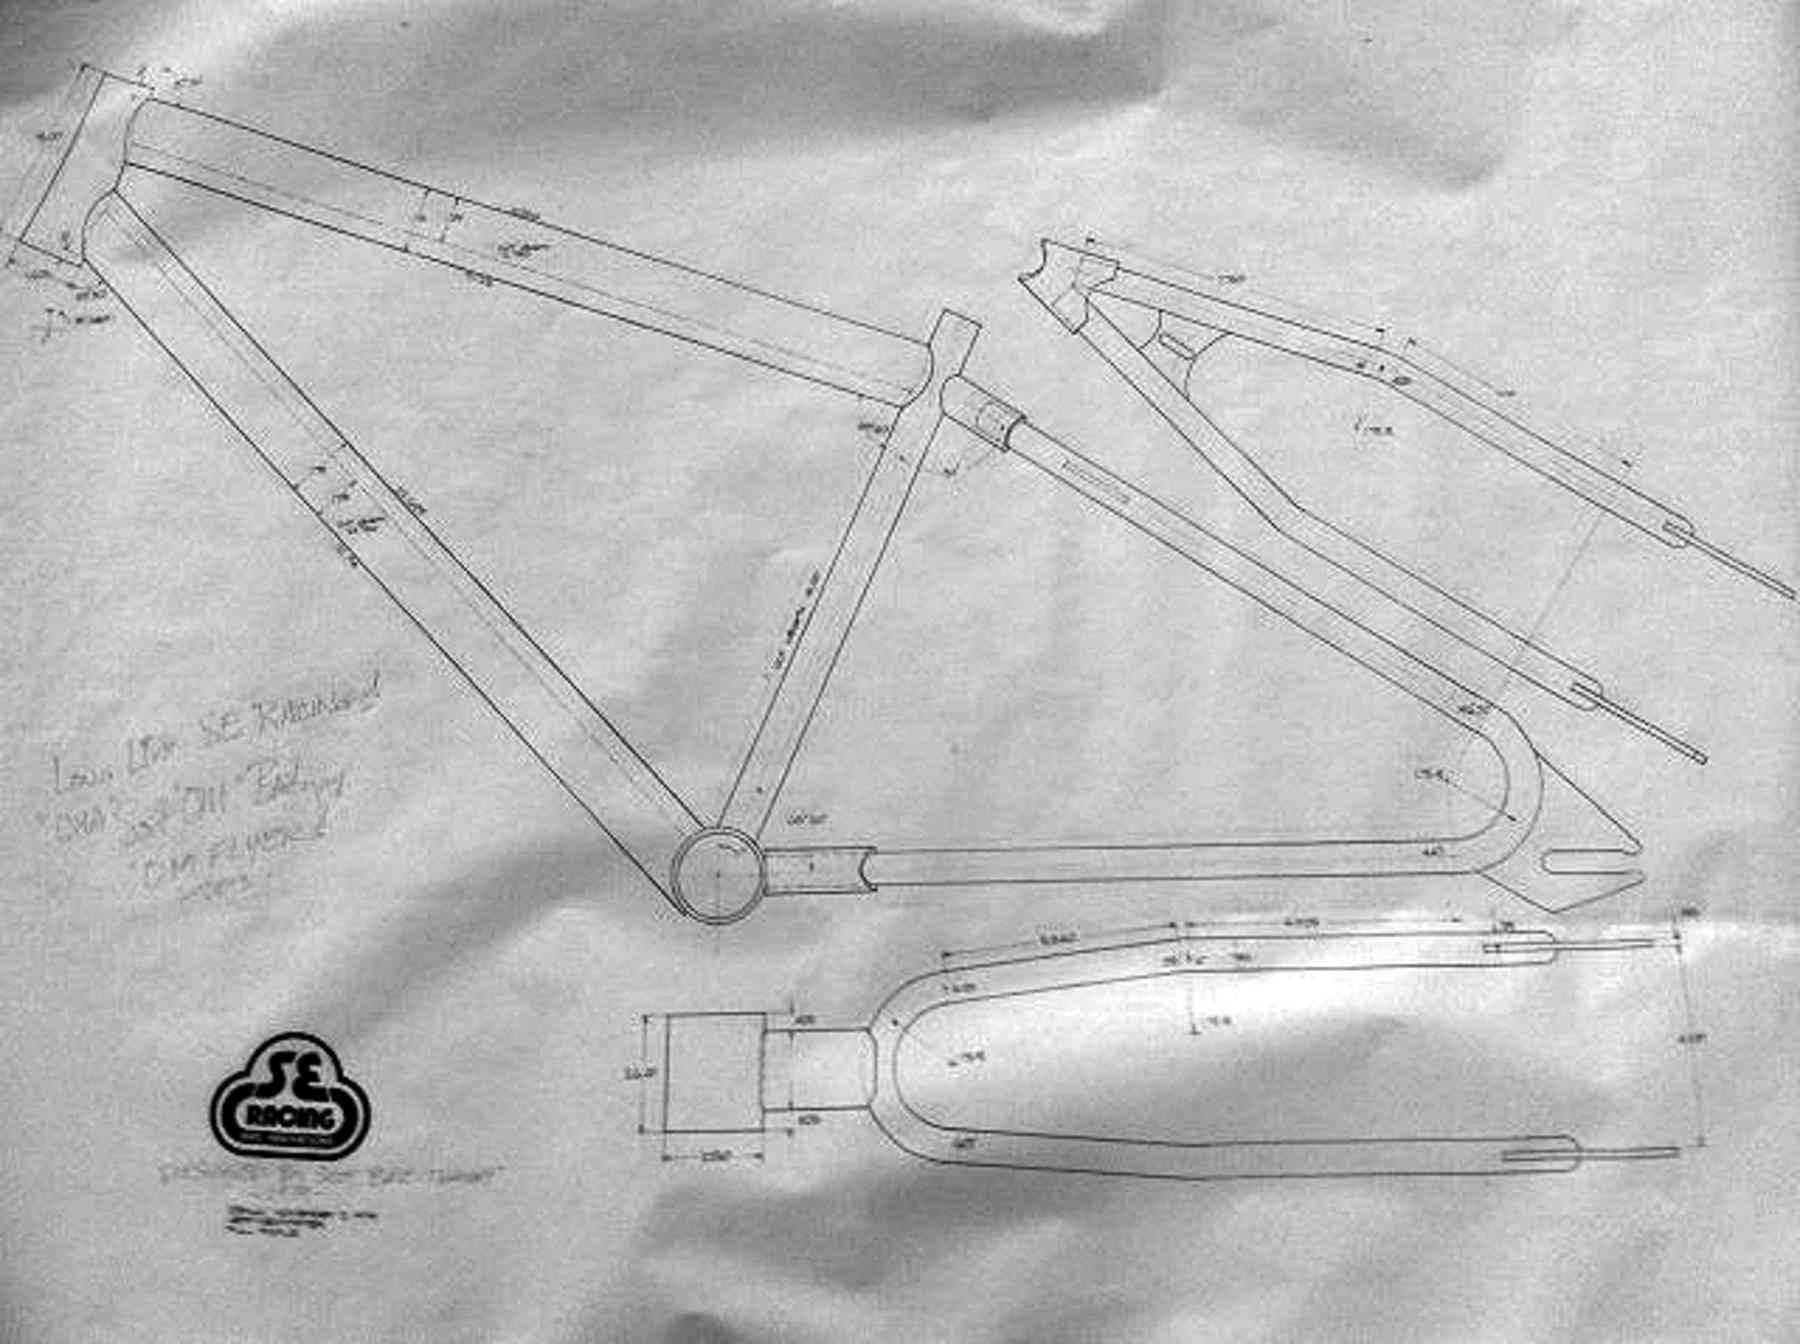 Bmxmuseum reference se racing signed frame blue prints add comment malvernweather Choice Image